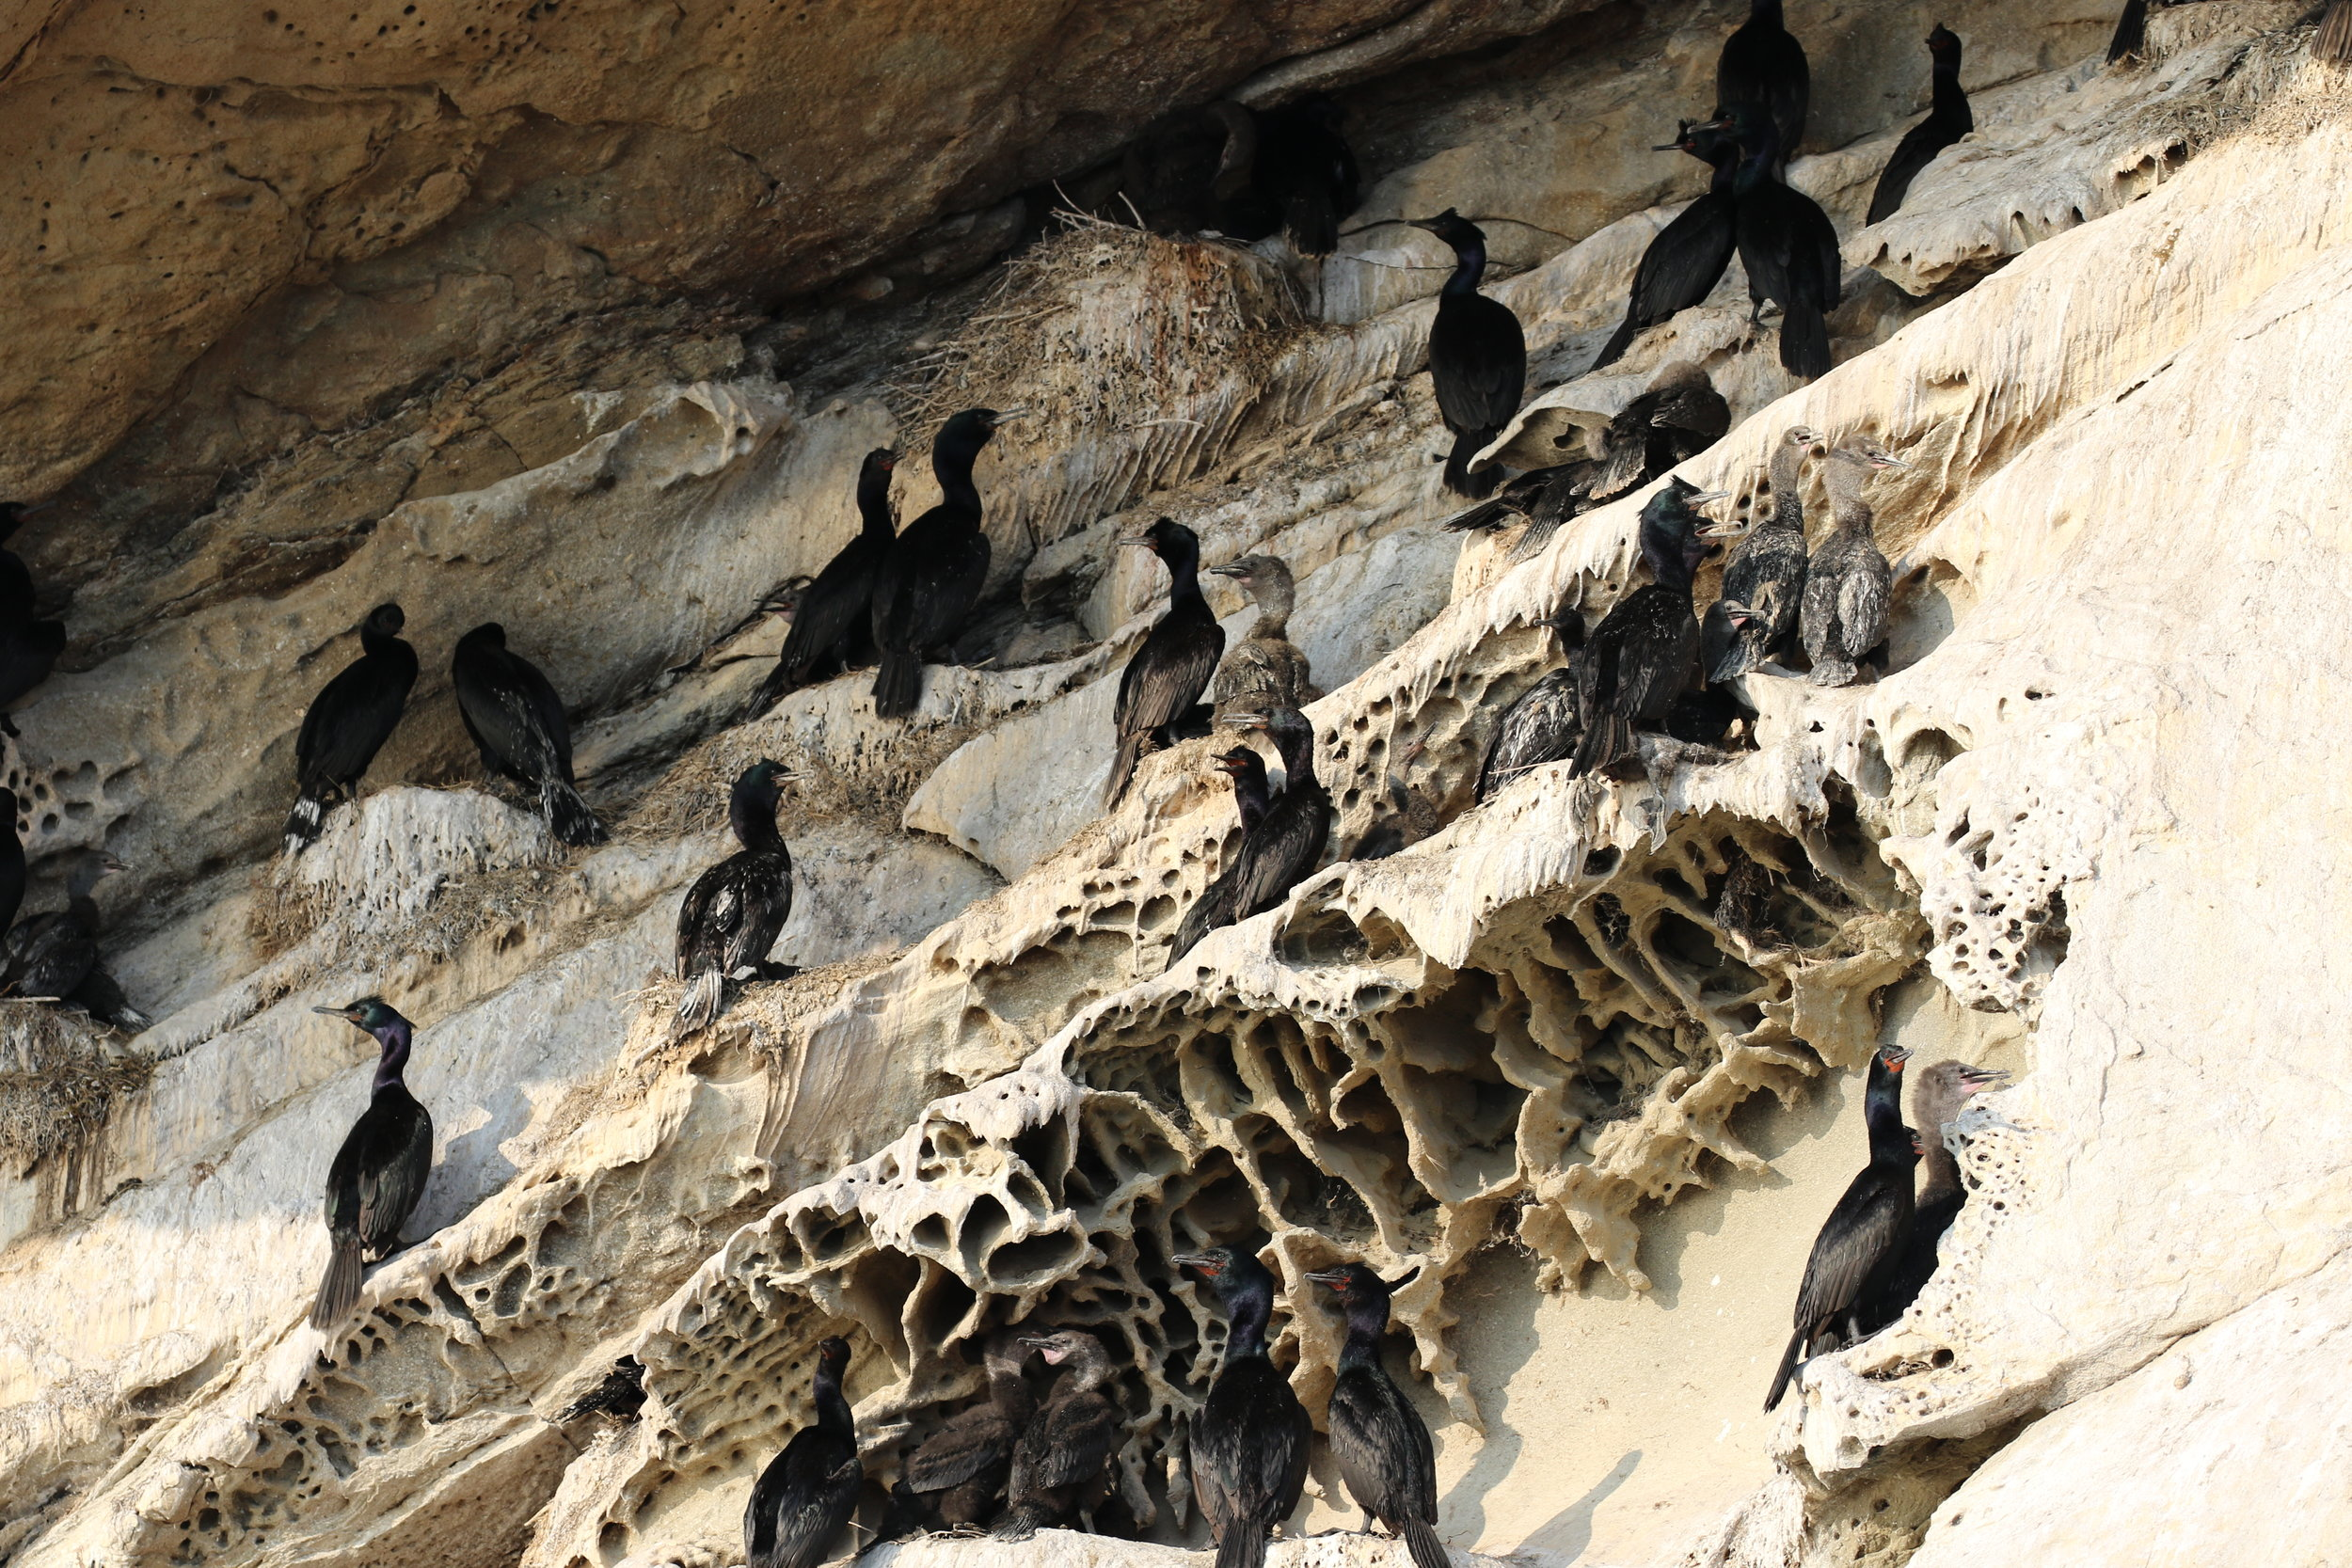 Tons of Cormorants and their chicks on the cliffside. Photo by Val Watson.